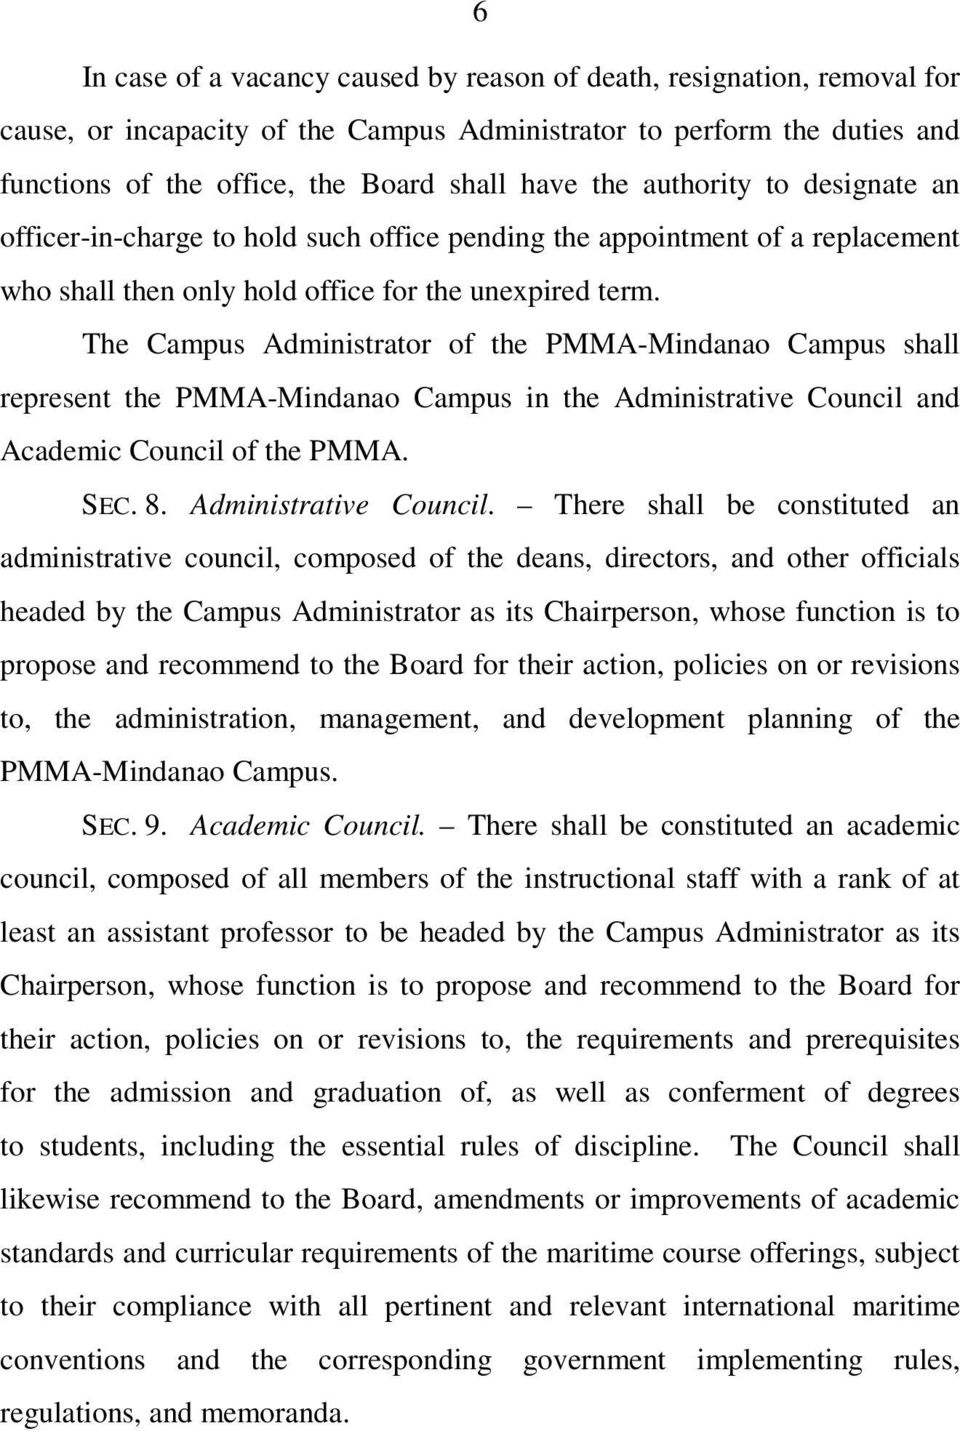 The Campus Administrator of the PMMA-Mindanao Campus shall represent the PMMA-Mindanao Campus in the Administrative Council